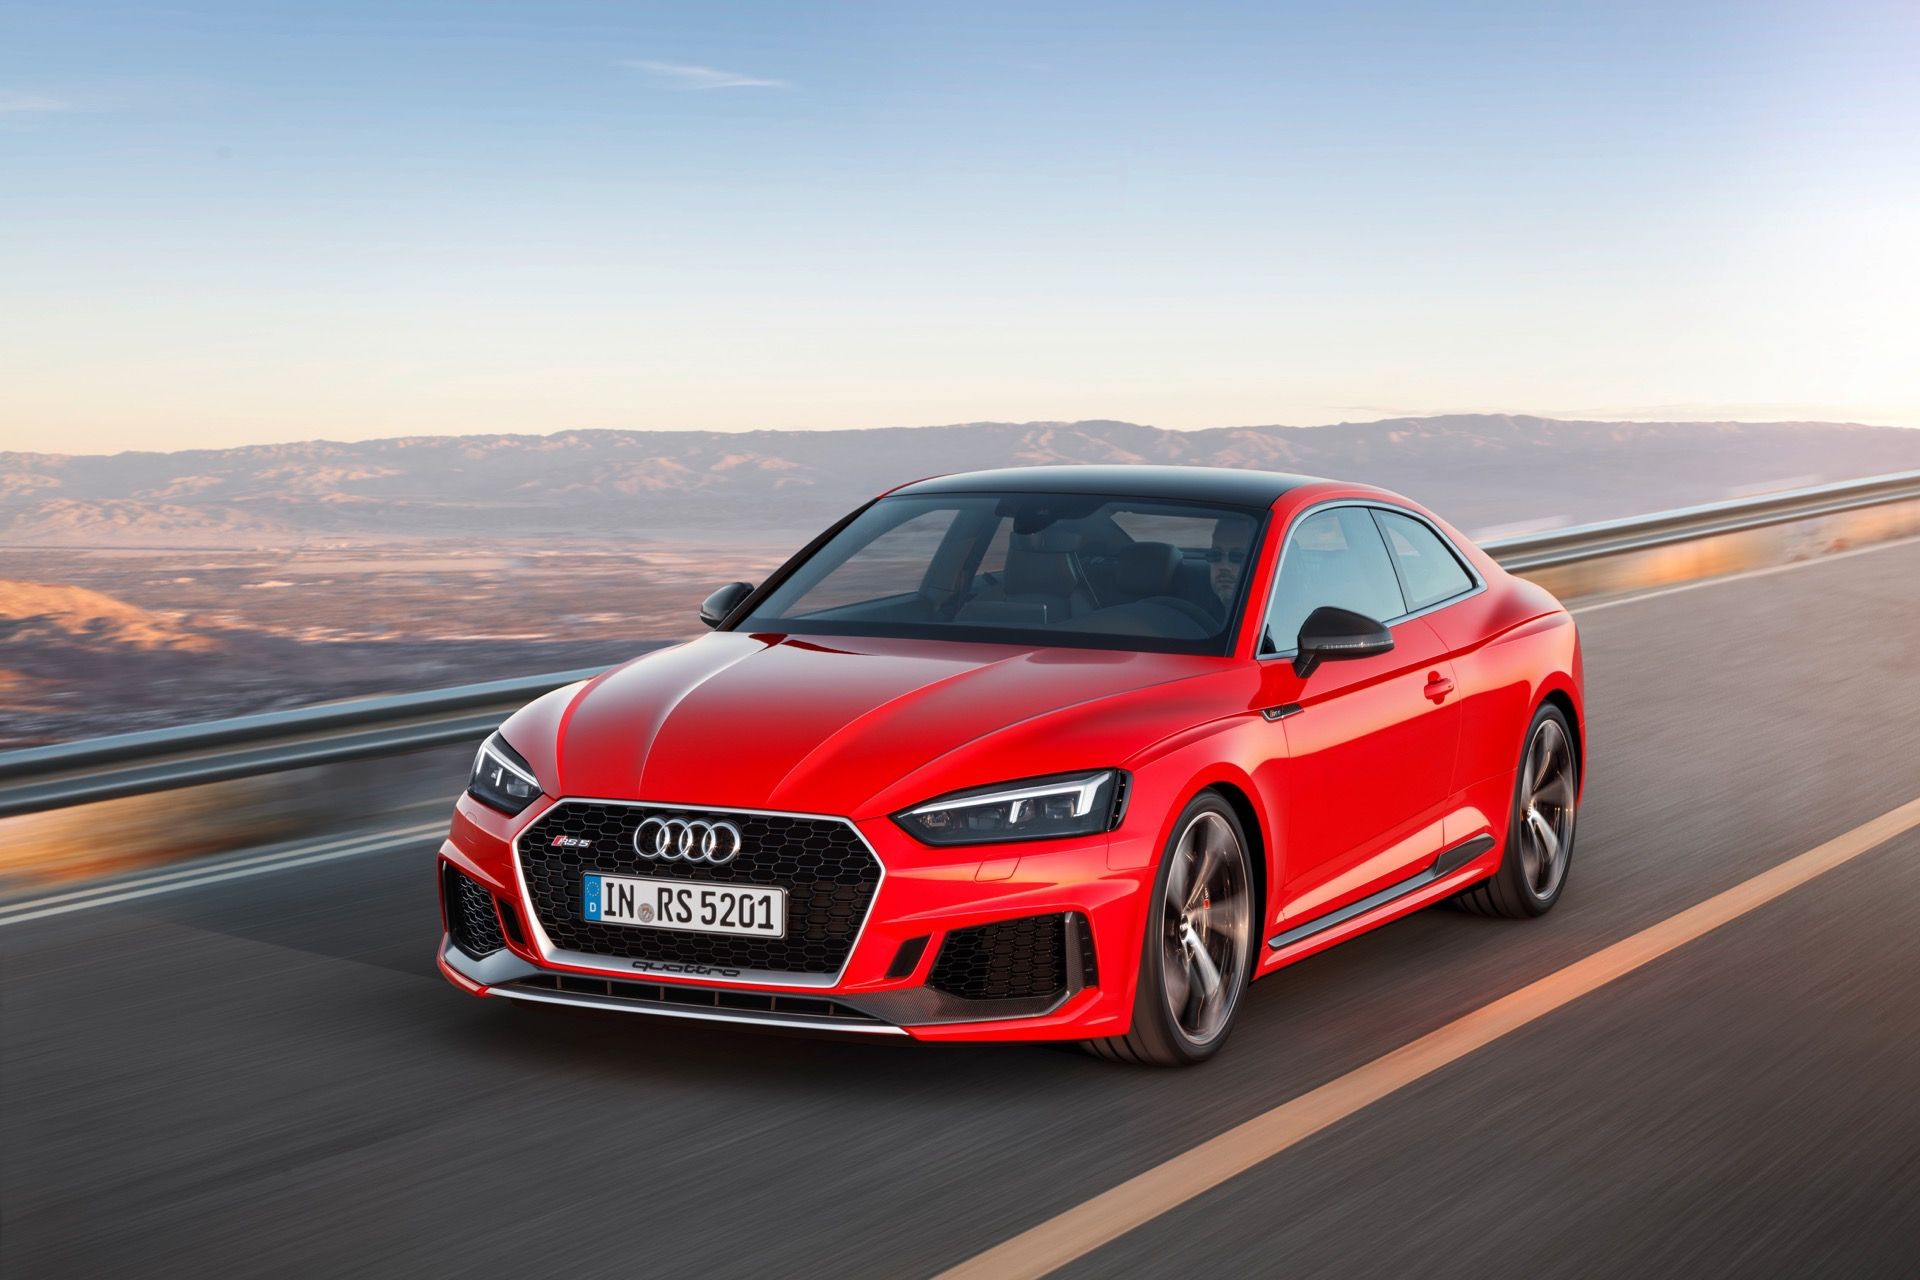 2017 geneva motor show audi rs5 coupe debuts to take on bmw m4 http